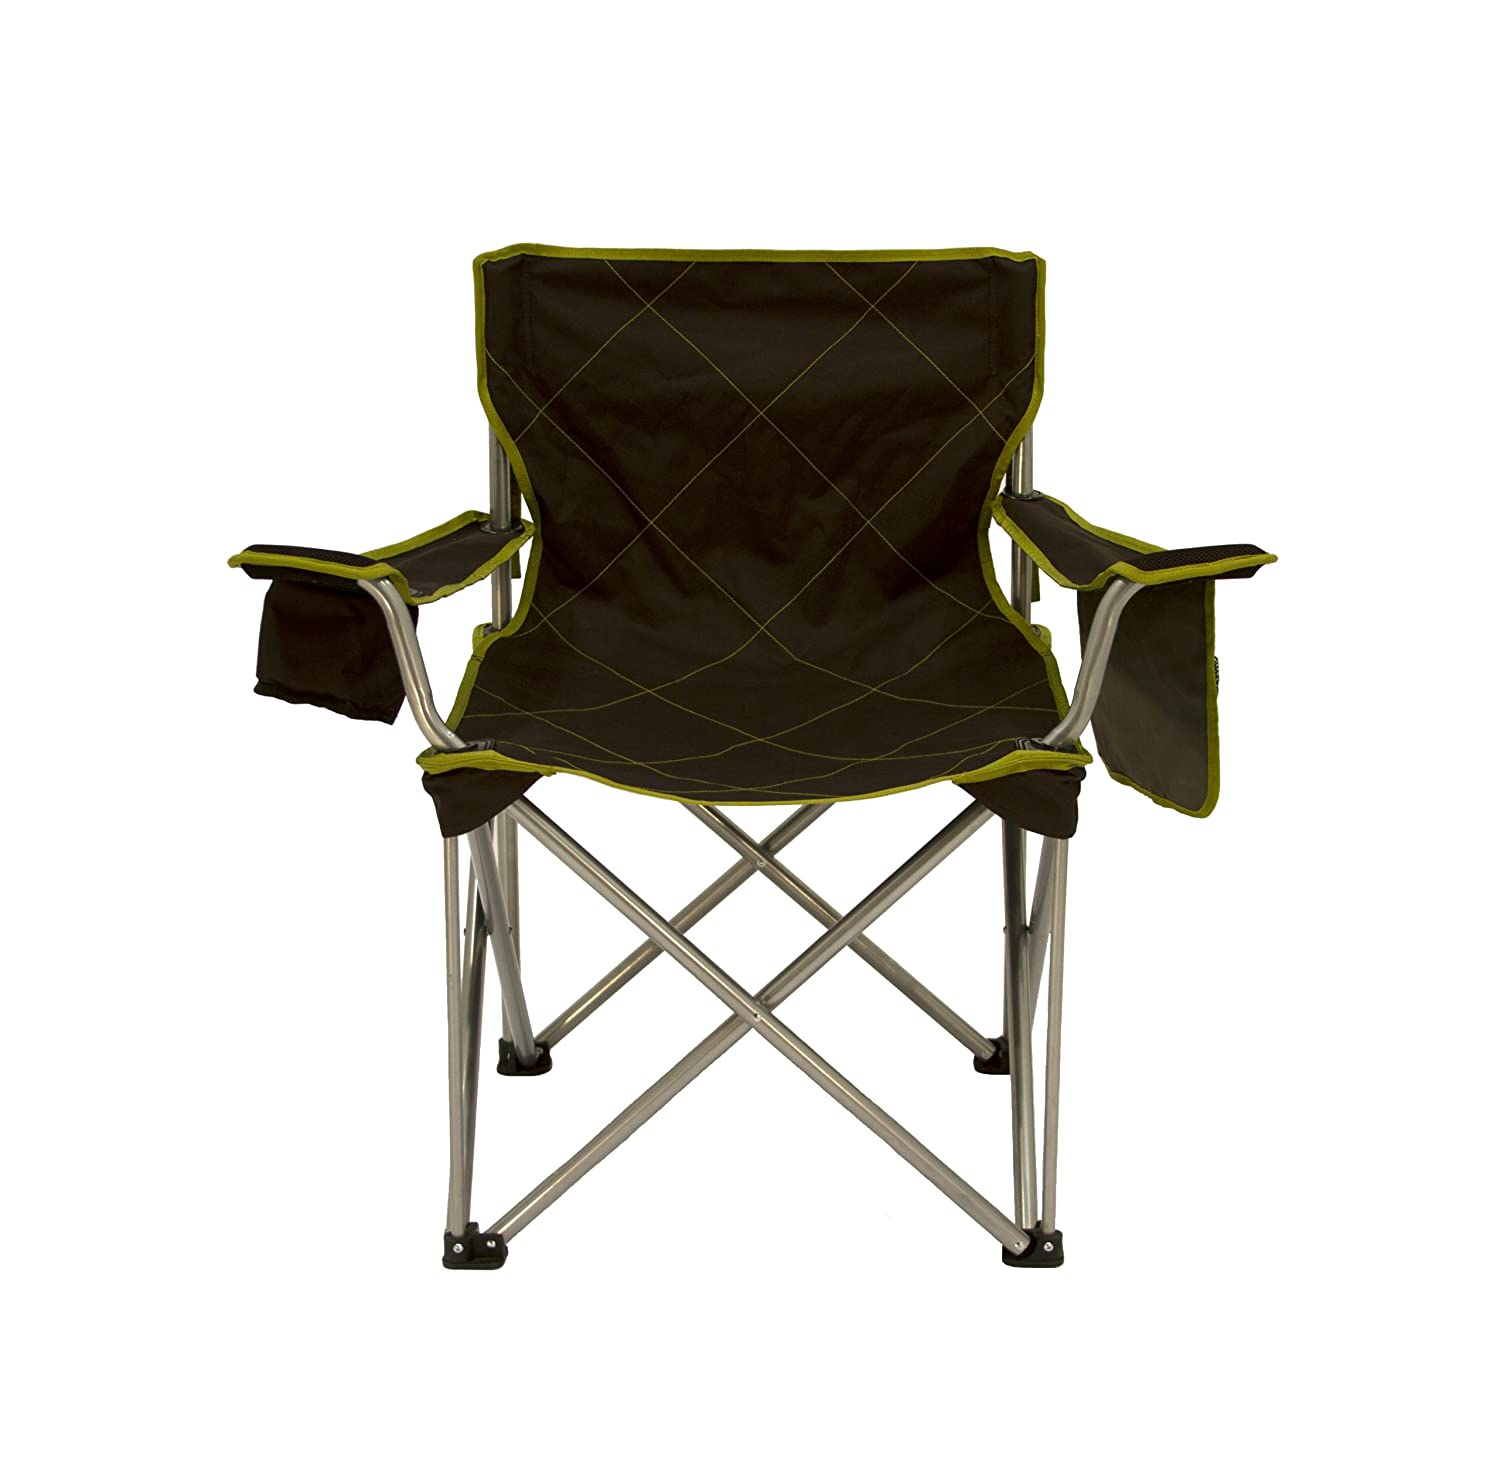 100 personalized folding chairs for waiting amazon com for Country living magazine phone number